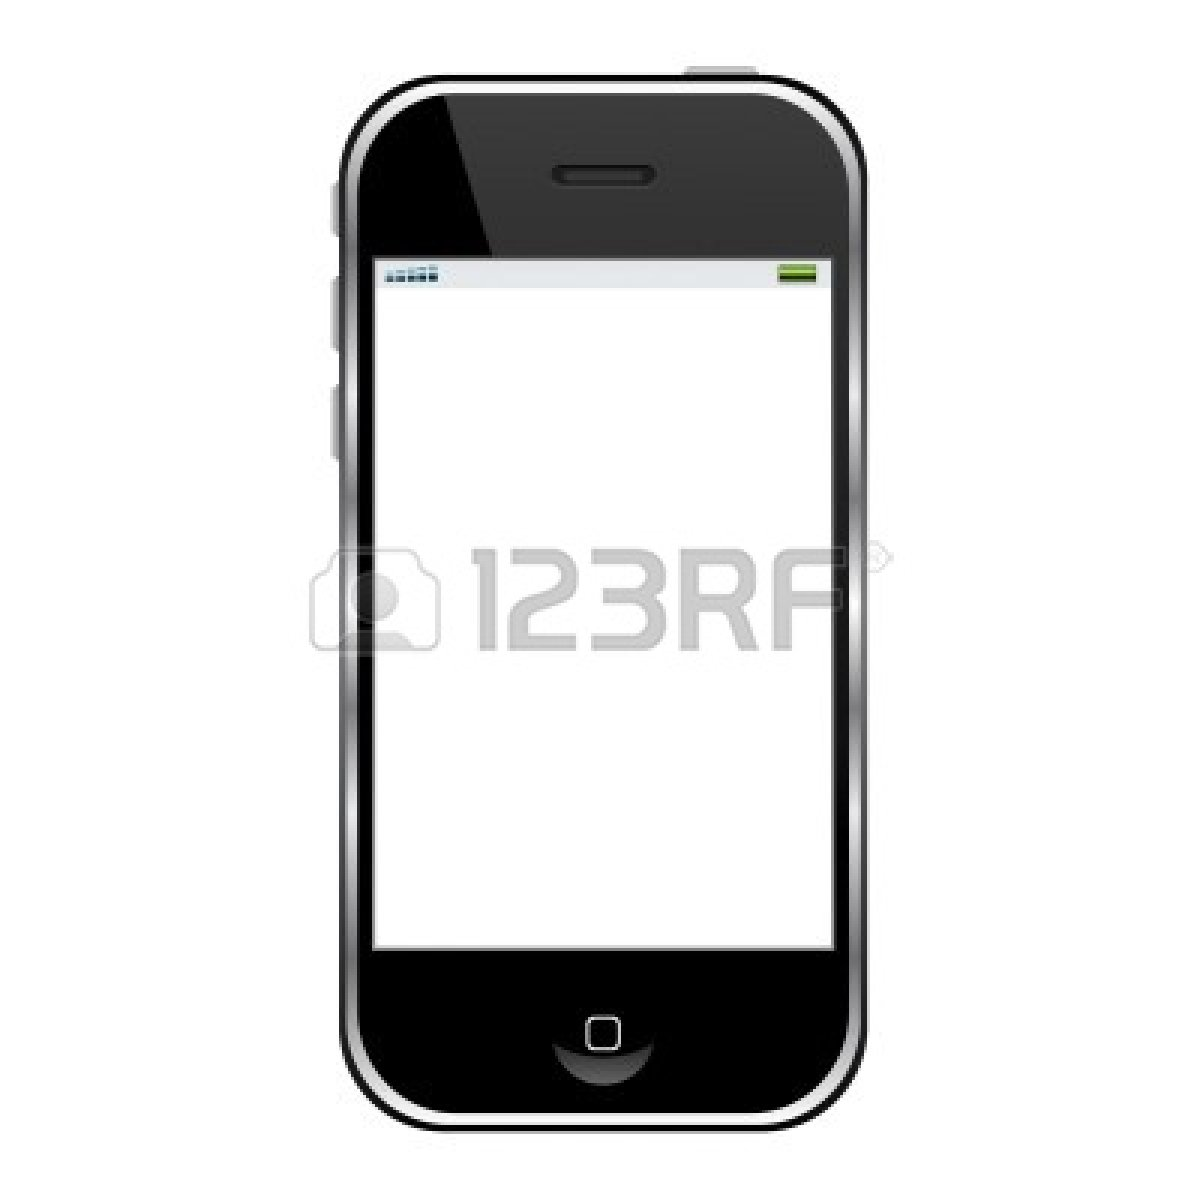 cell phone clipart black and white - photo #19